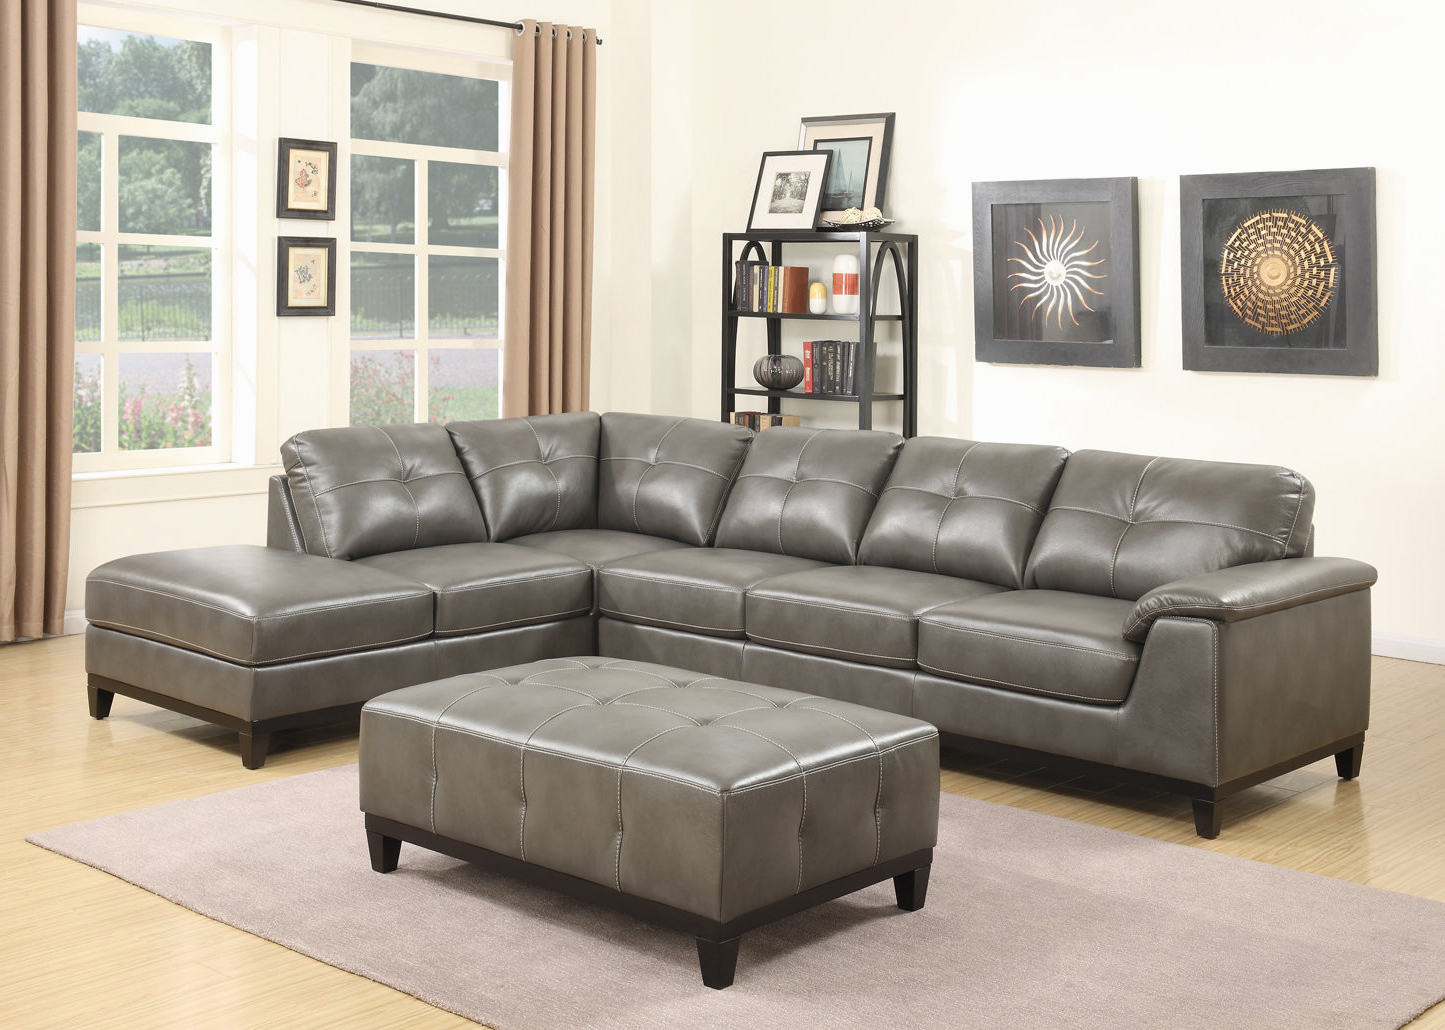 Living Room Sofa With Chaise Beautiful Trent Austin Design Lonato For Recent Aquarius Light Grey 2 Piece Sectionals With Laf Chaise (Gallery 19 of 20)